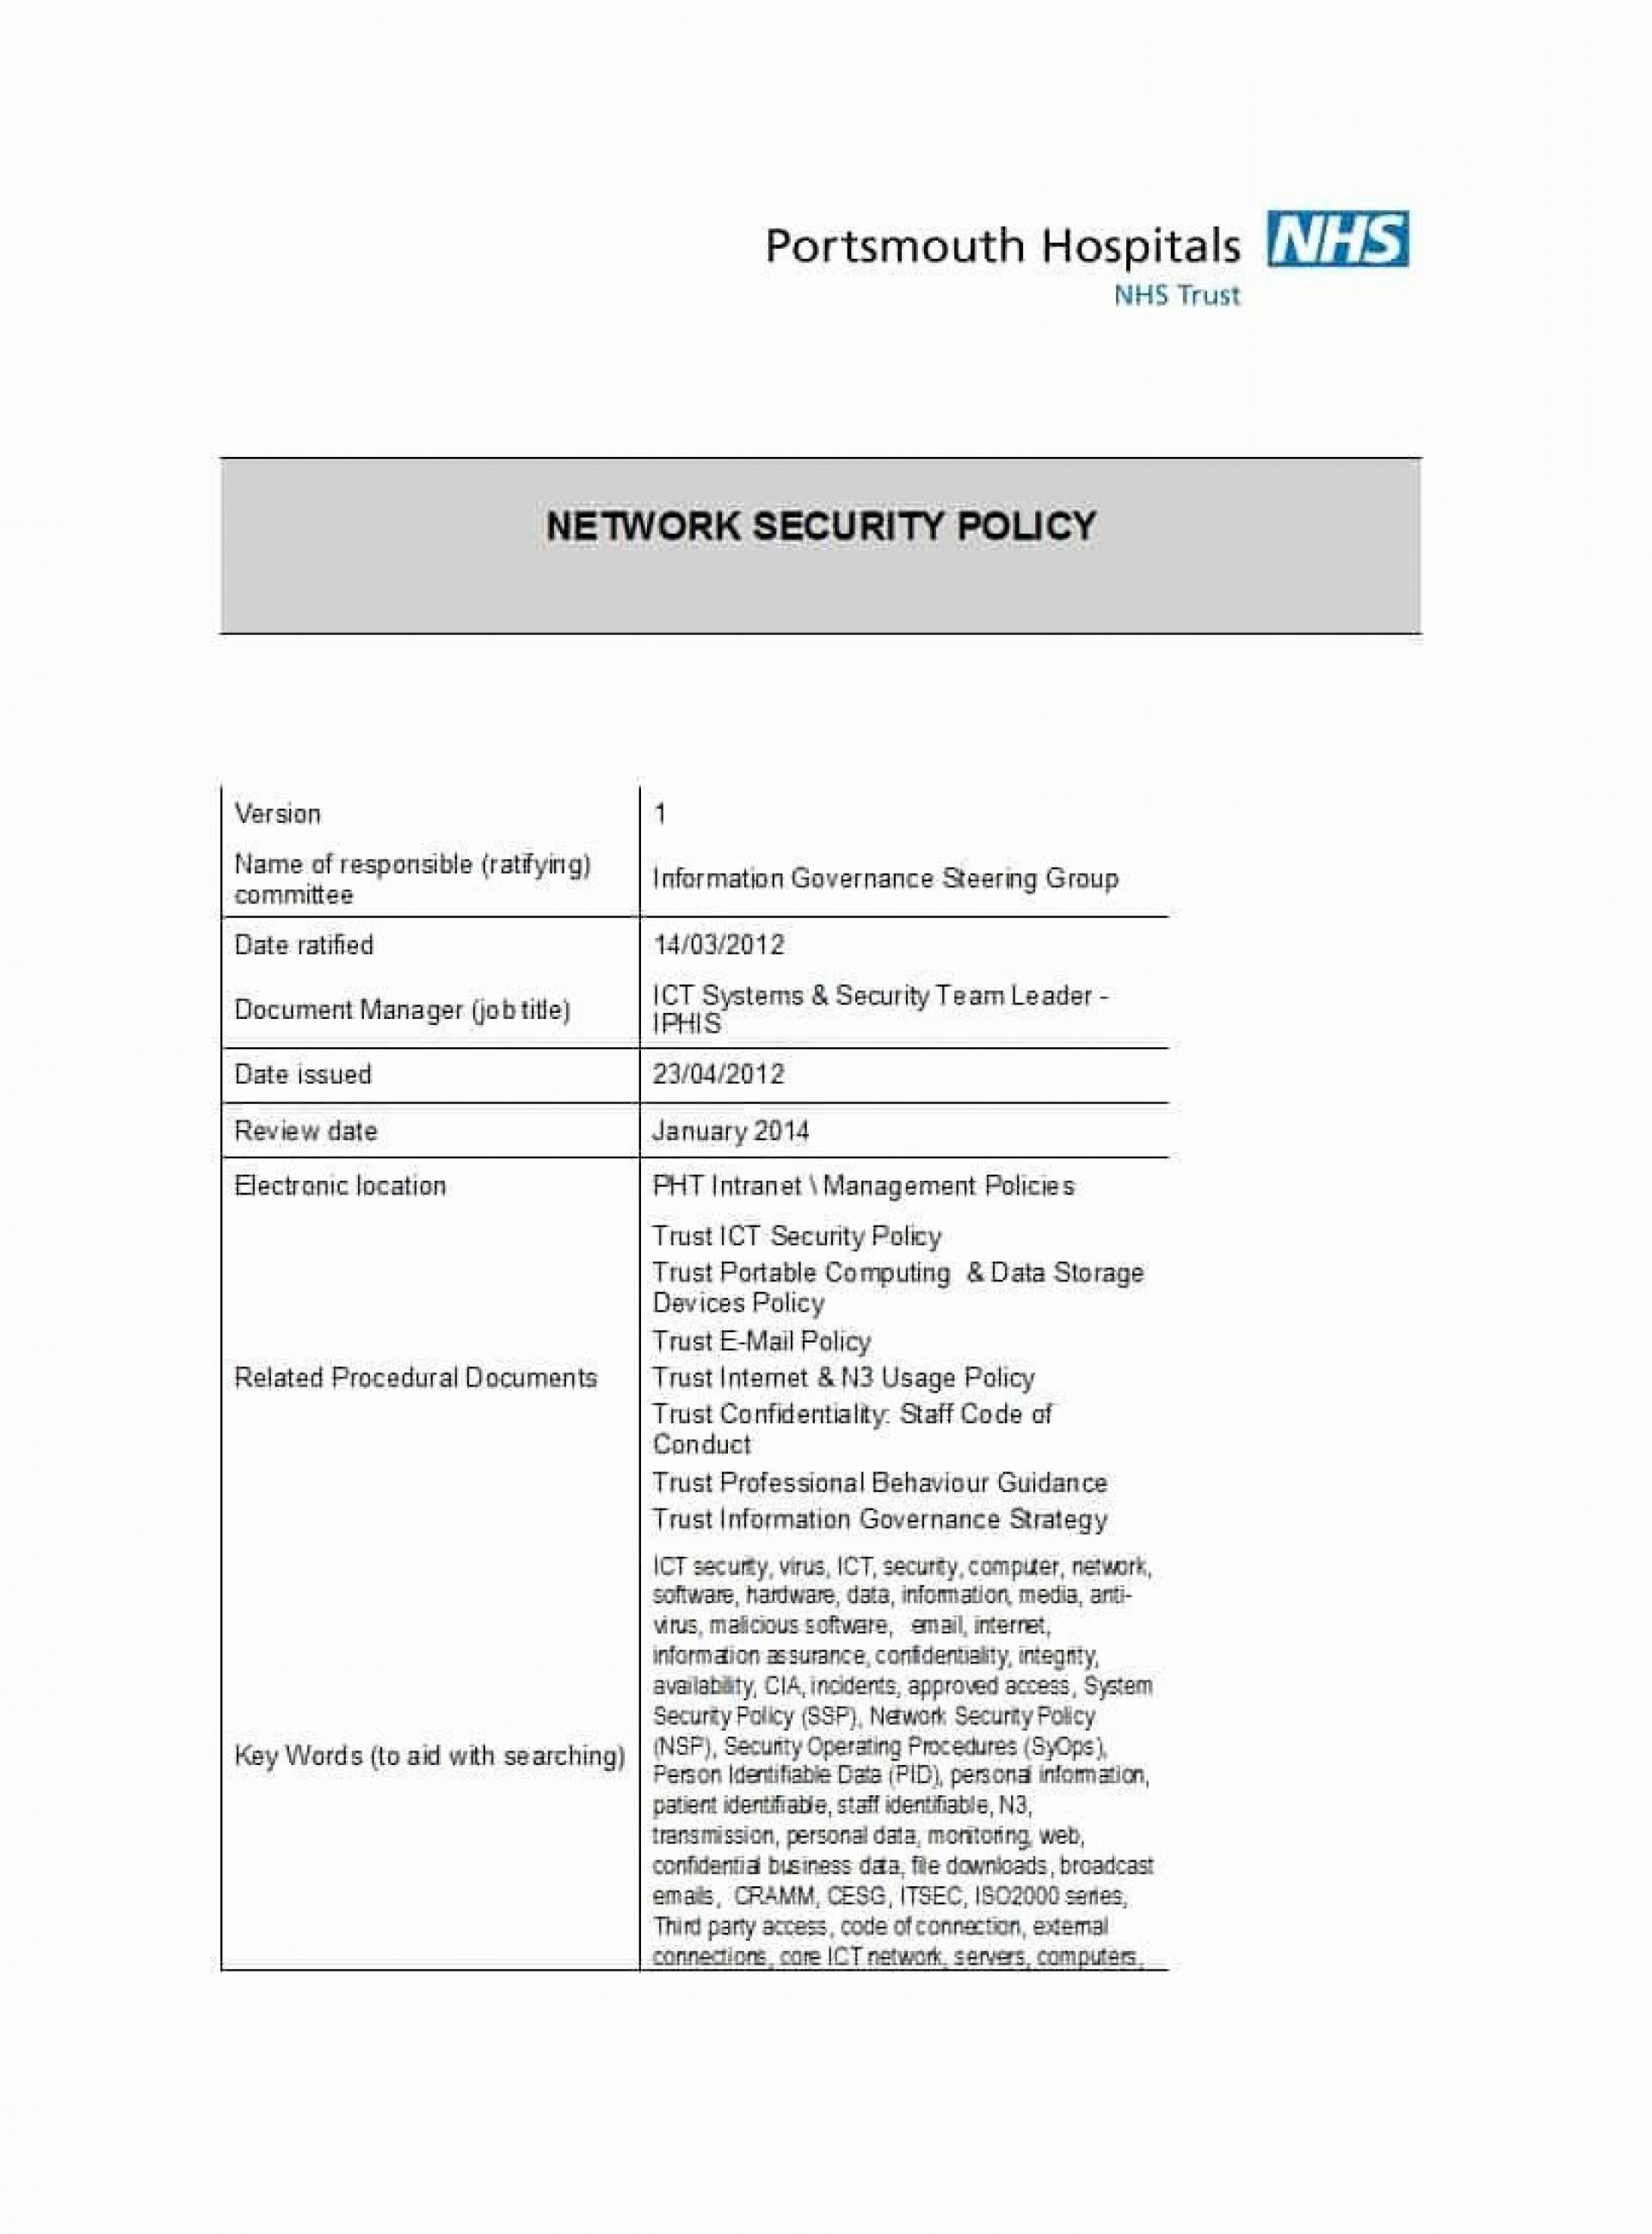 002 Awful It Security Policy Template High Resolution  Cyber Nist Australia Uk Free1920